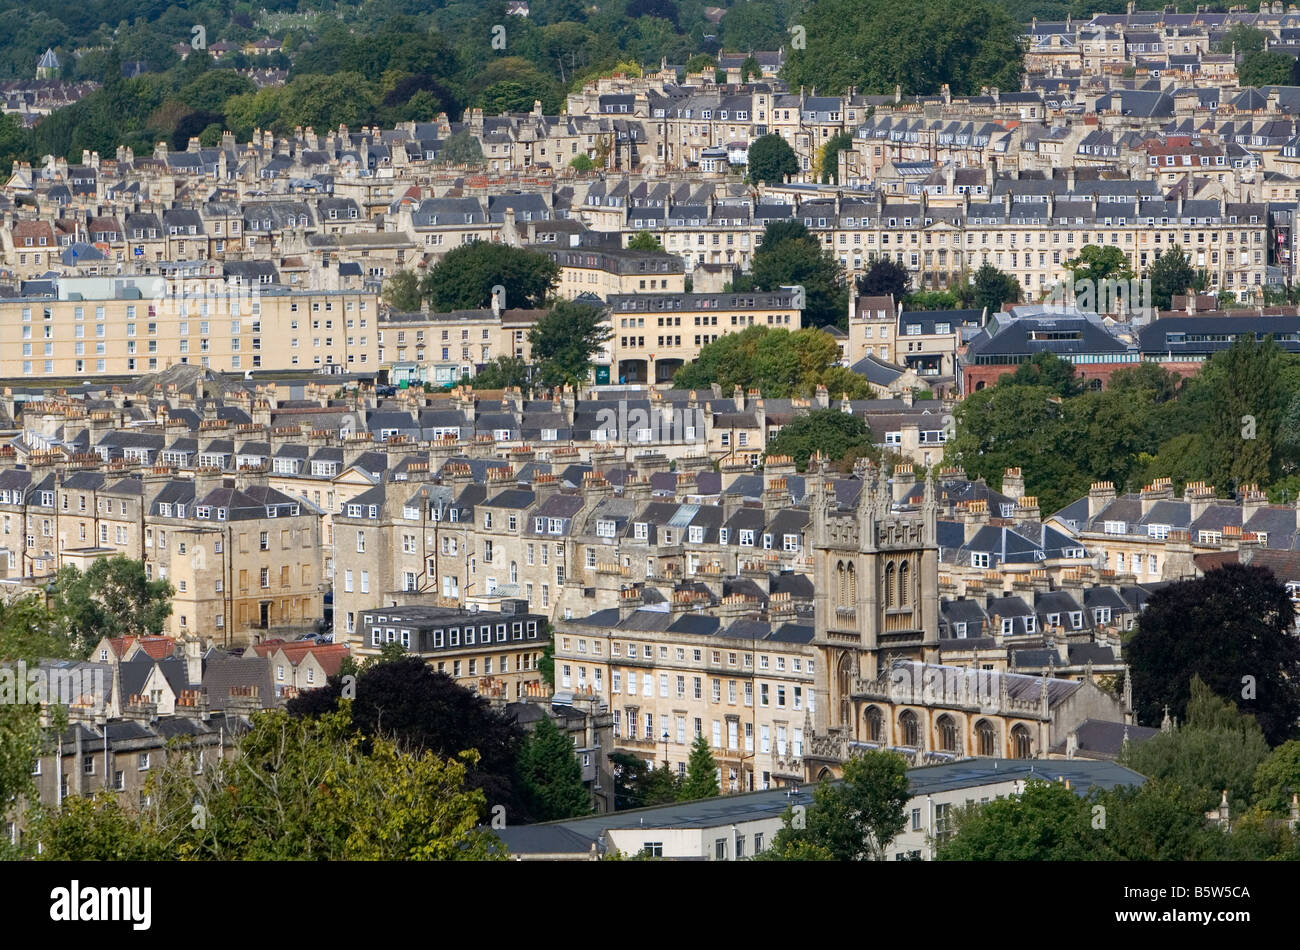 the city of bath england Bath: bath, city, unitary authority of bath and north east somerset, historic county of somerset, southwestern england bath lies astride the river avon (lower, or bristol, avon) in a natural arena of steep hills.